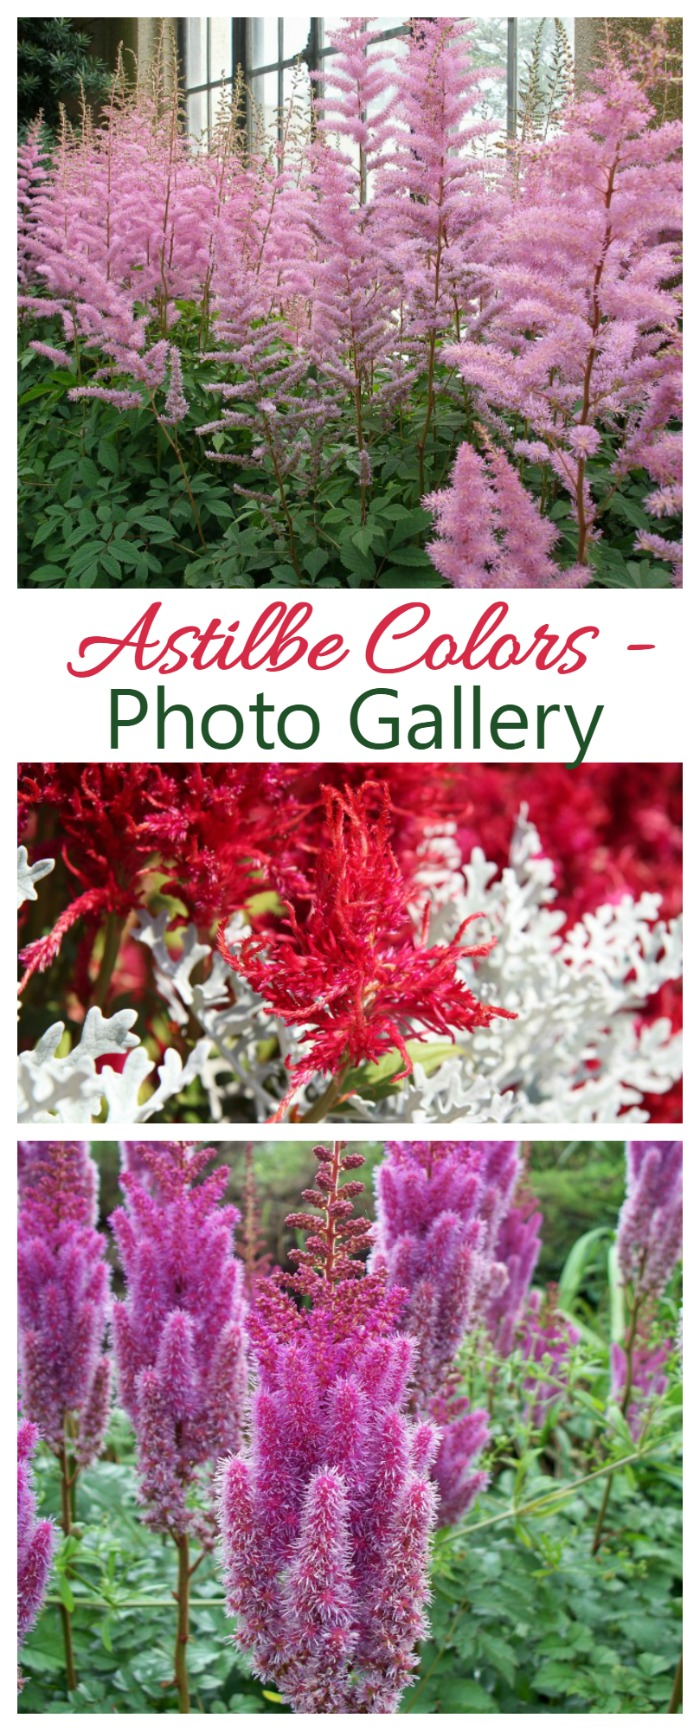 Astilbe colors run the gamut from pure white to deep red with dozens of shades of pink, peach and purple in between. The plant does best in a semi shady garden and will be the star all summer long.